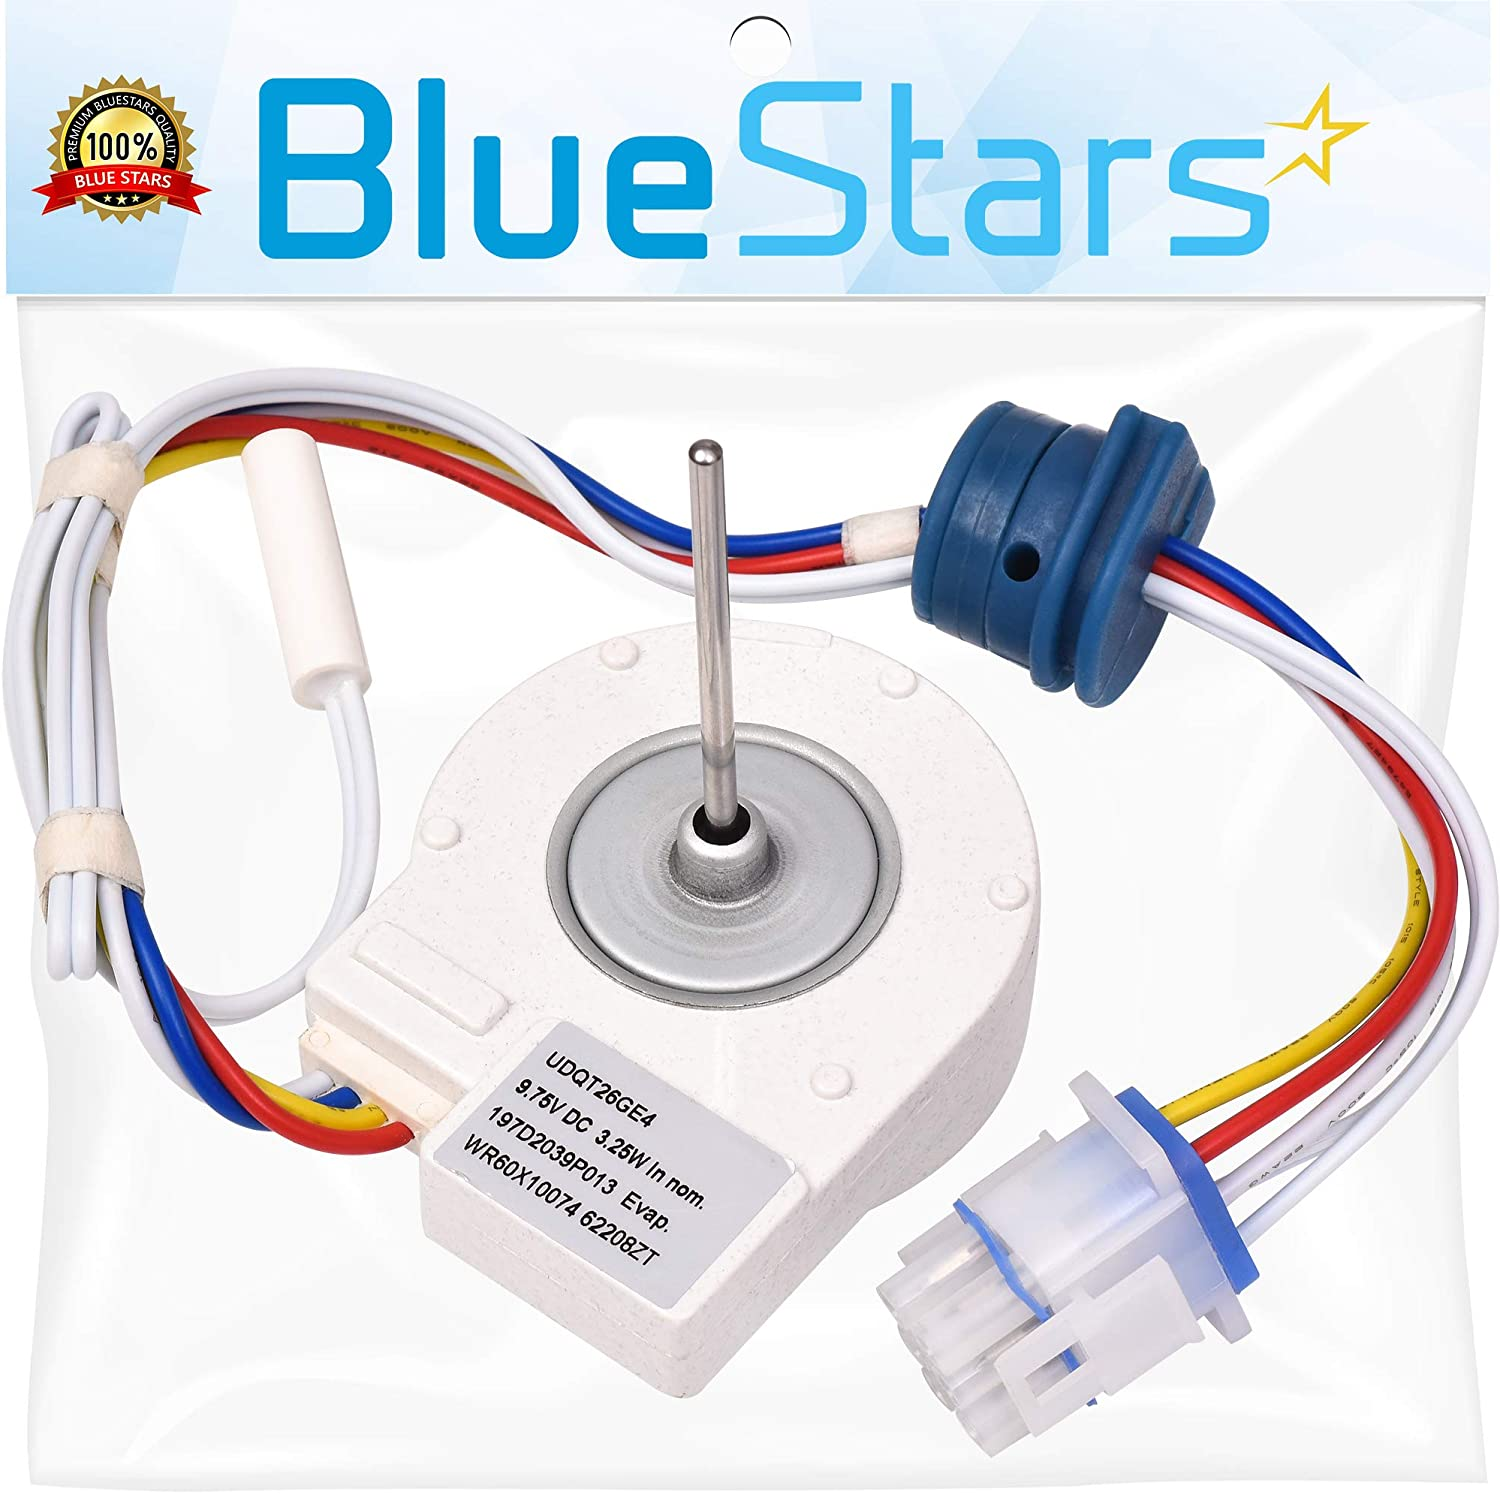 Ultra Durable WR60X10307 Evaporator Fan Motor Replacement Part by Blue Stars- Exact Fit for GE Hotpoint Refrigerators - Replaces 1550741 AP4438809 WR60X10224 Ps2364950